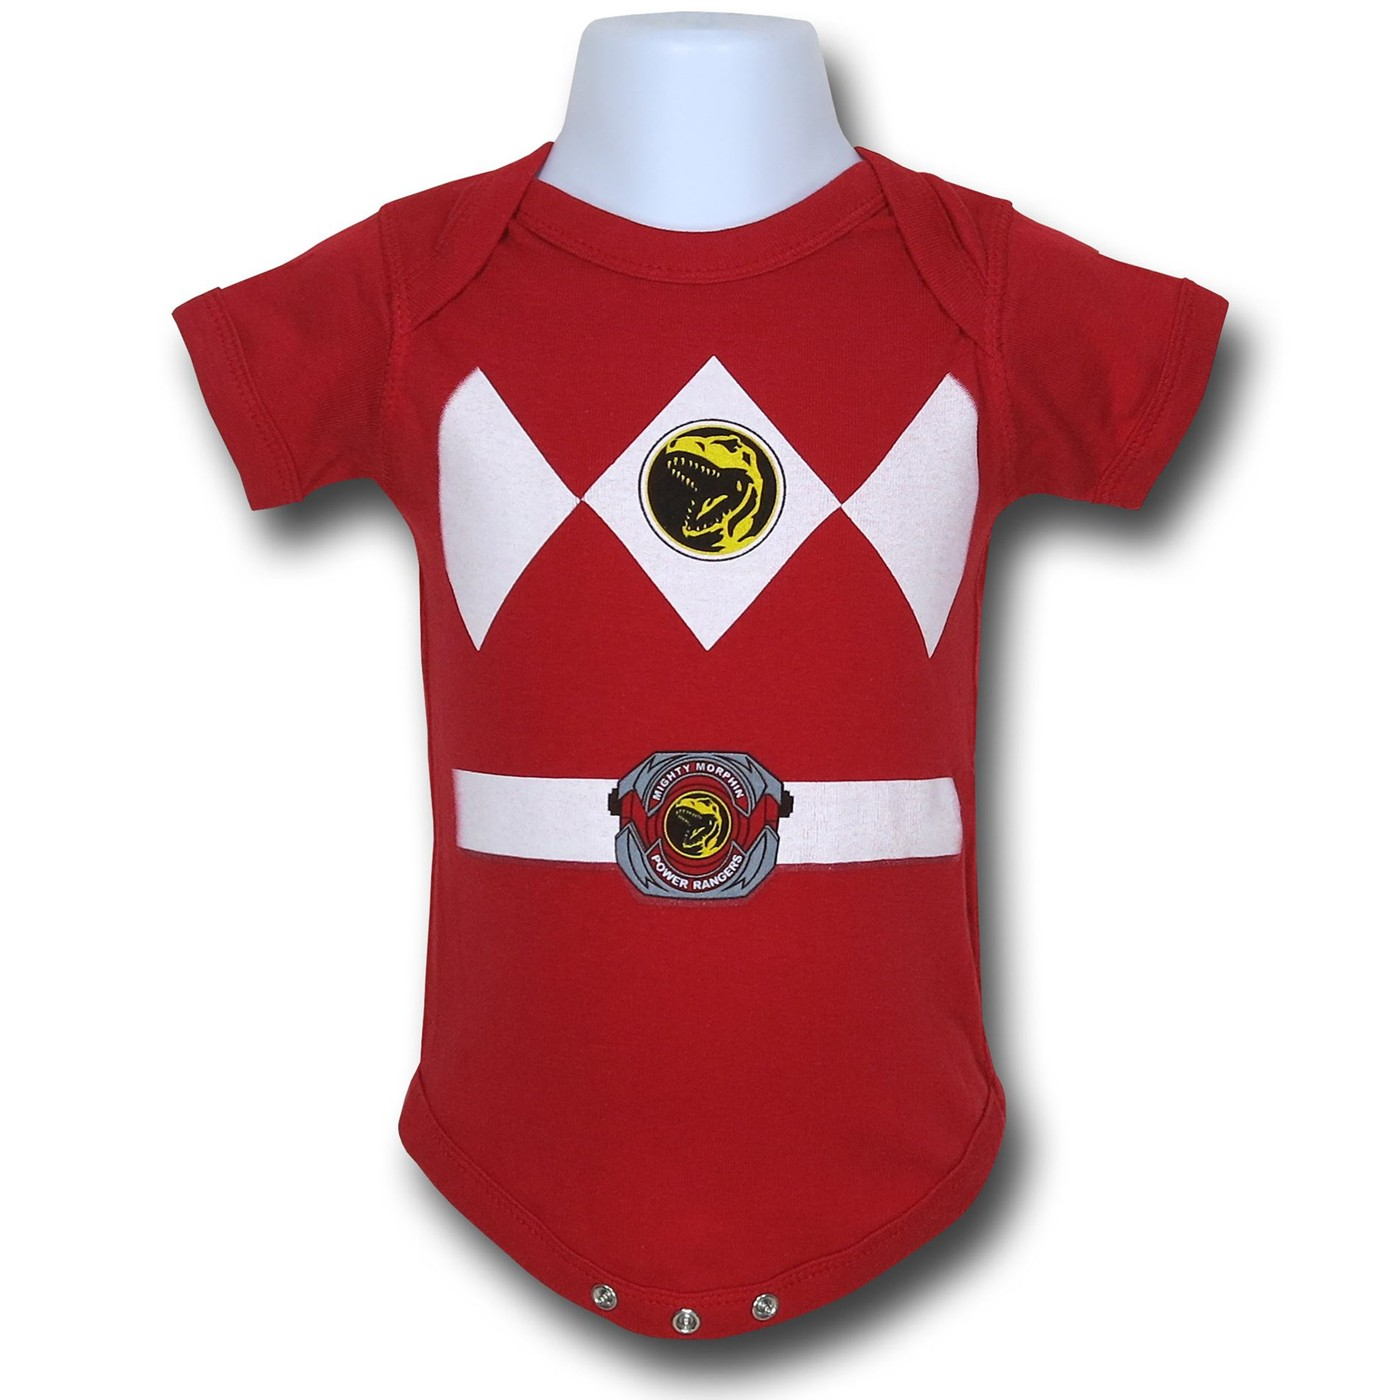 Power Rangers Red Infant Snapsuit